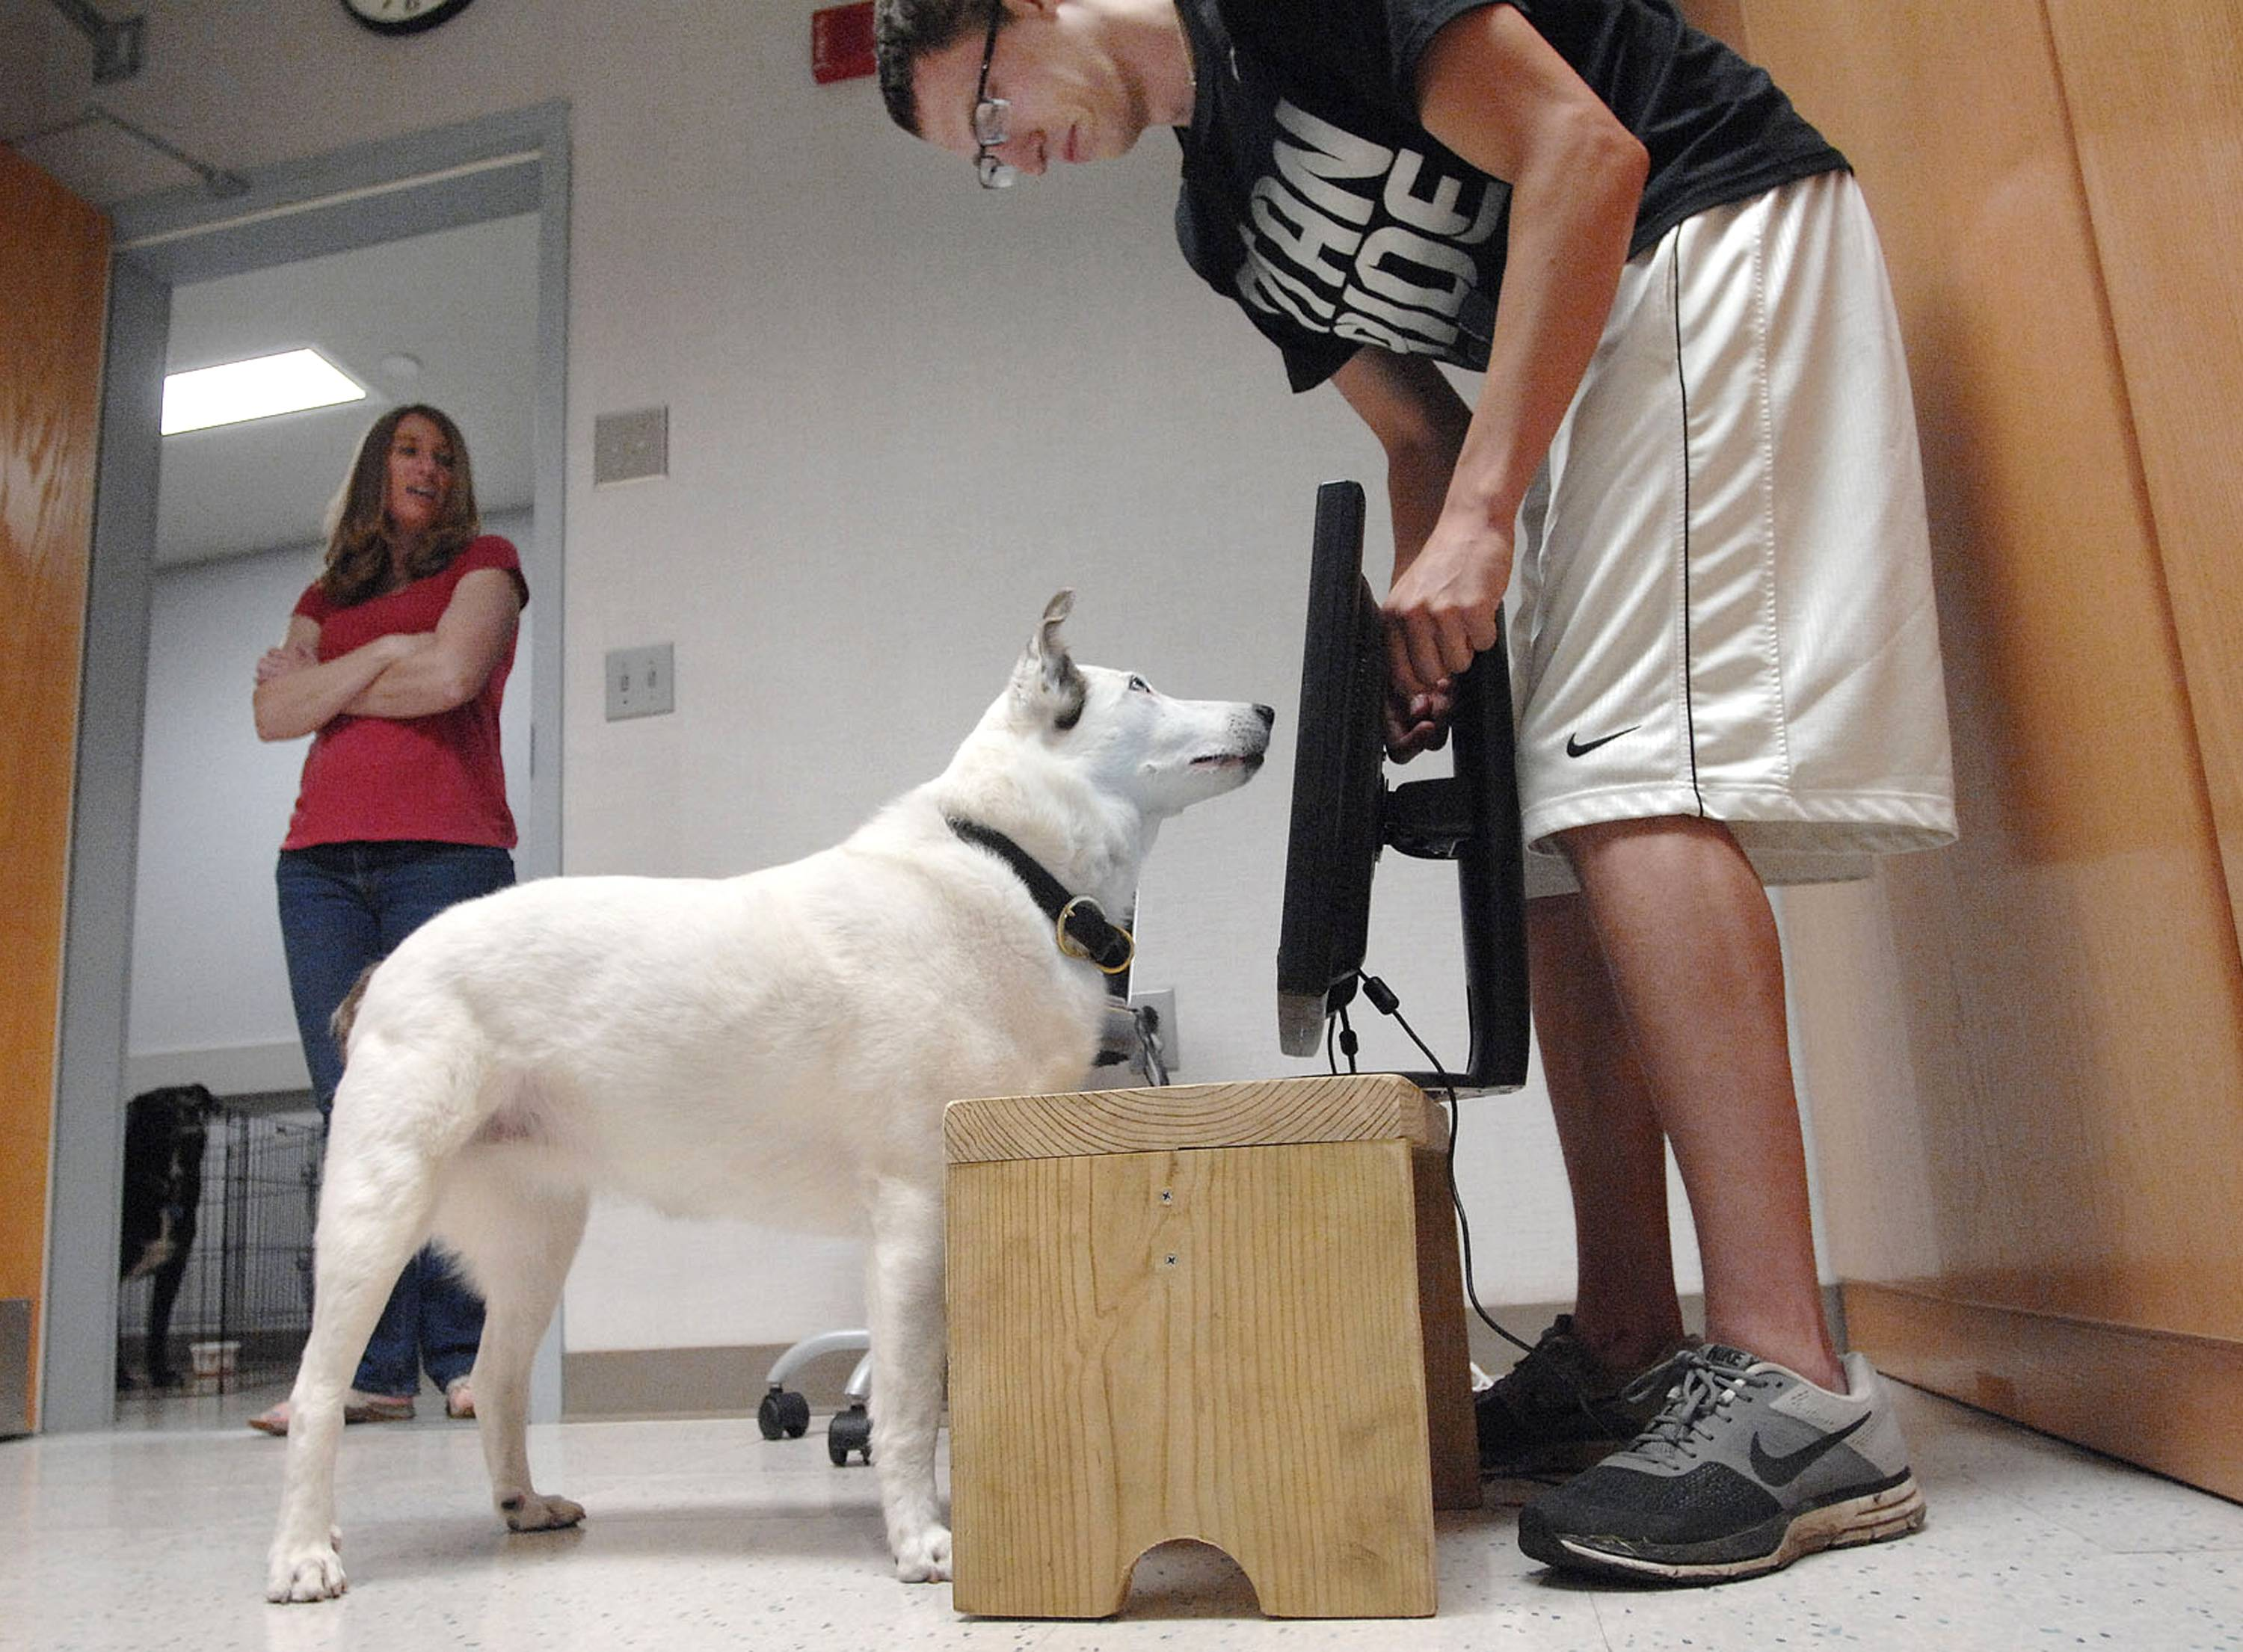 Ellen Furlong, left, Illinois Wesleyan University associate professor, works with psychology major Brenden Wall as he trains her dog Cleo to respond to computer stimulation during their work in the school's comparative cognition laboratory, at IWU in Bloomington.